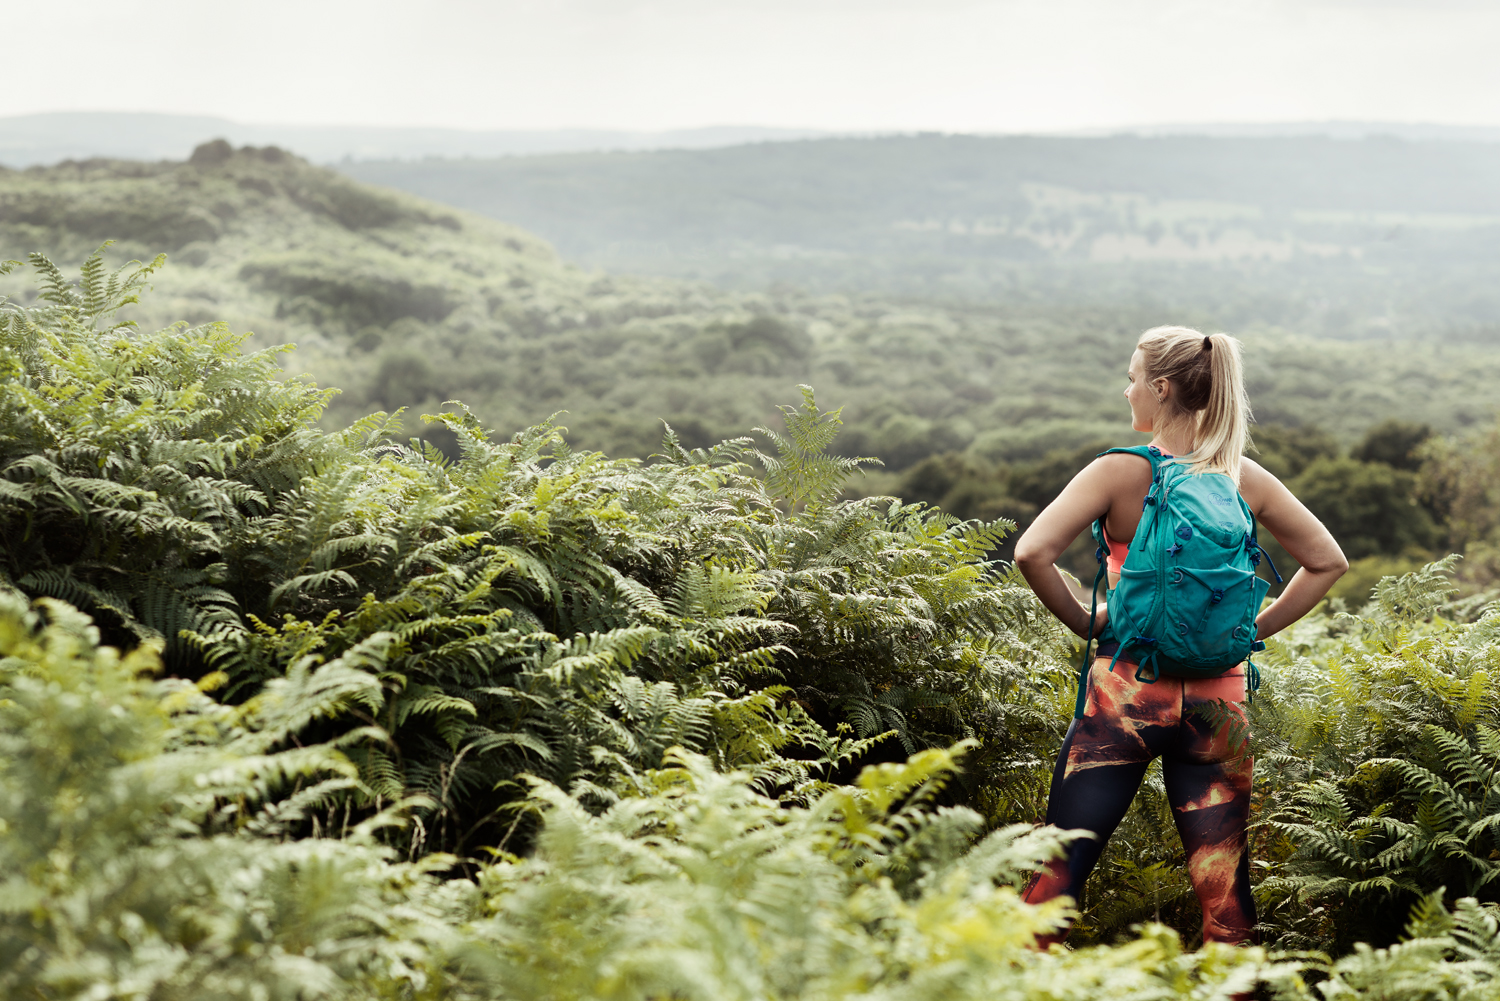 Sophie Radcliffe Challenge Sophie While You Were Sleeping. Trail Running